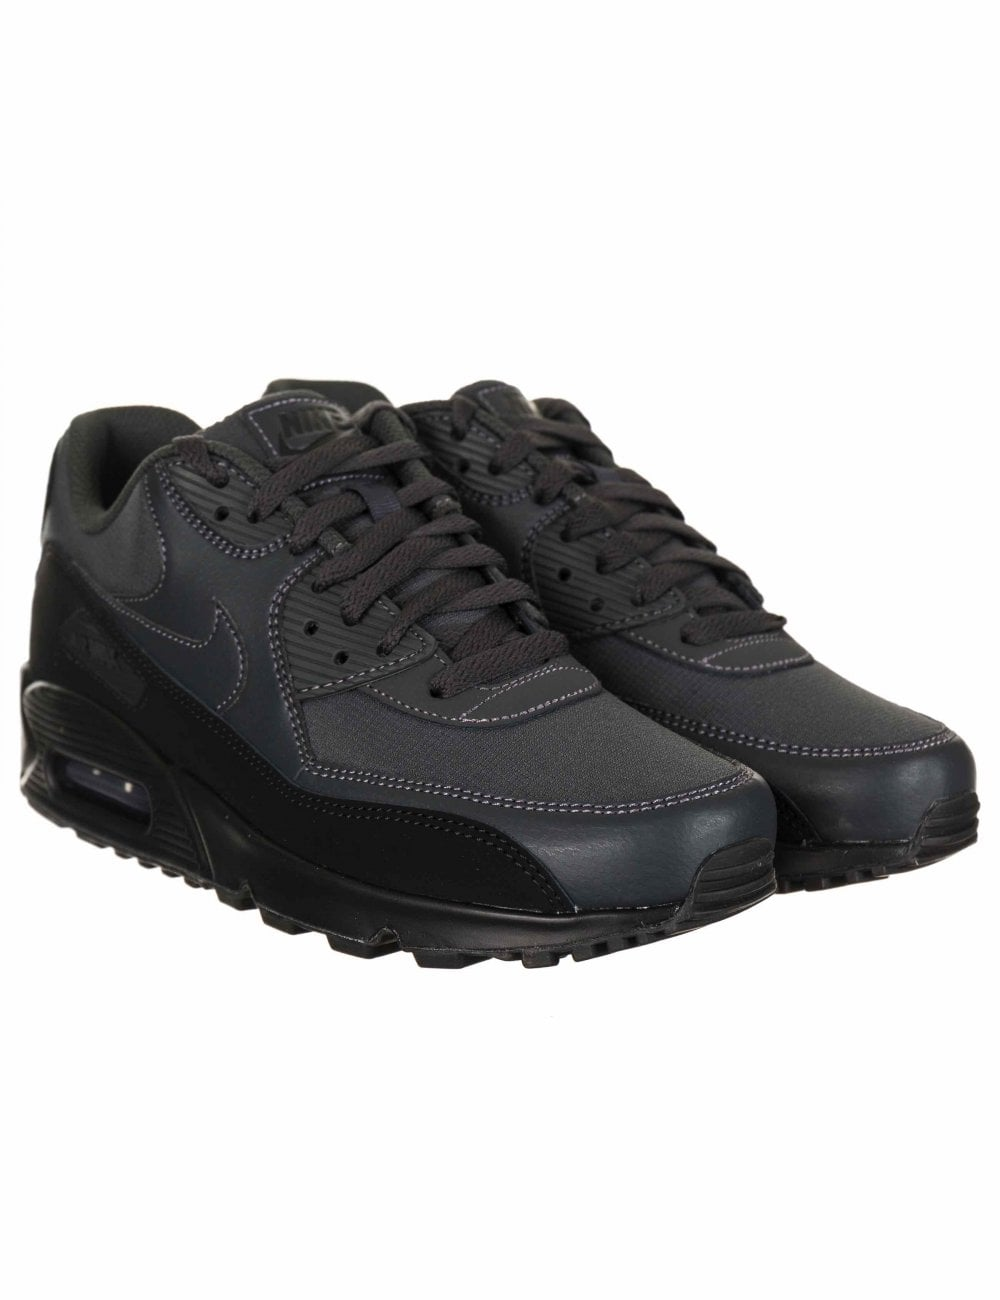 new styles 53fc7 d87d7 Air Max 90 Essential Trainers - Black/Anthracite